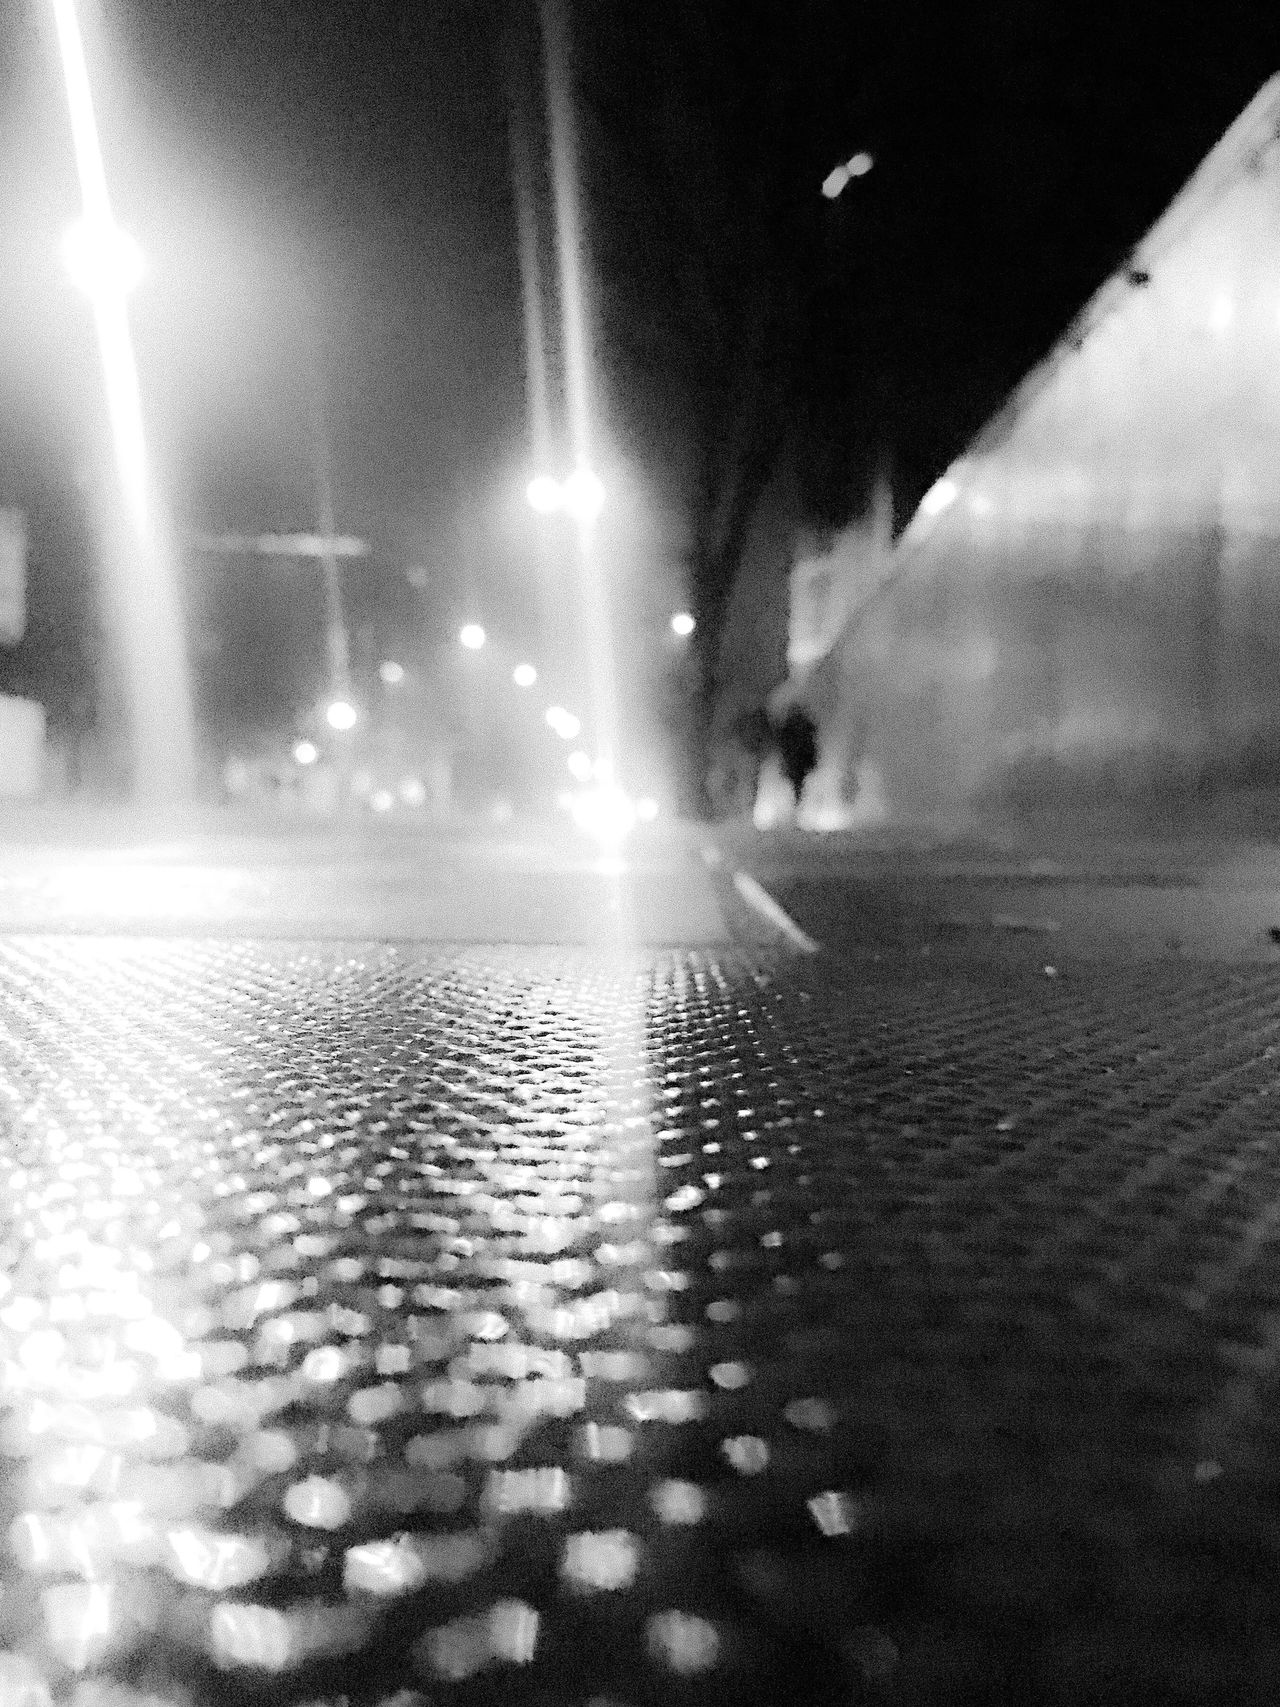 Street Scene Urban Exploration Night Mysterious Reflection EyeEm Best Shots - The Streets Illuminated Streetphotography EyeEm Best Shots Abstract Vanishing Point Artistic Atmospheric Mood Black And White Photography The Week Of Eyeem Fresh On Eyeem  Walking Silhouette Low Angle View